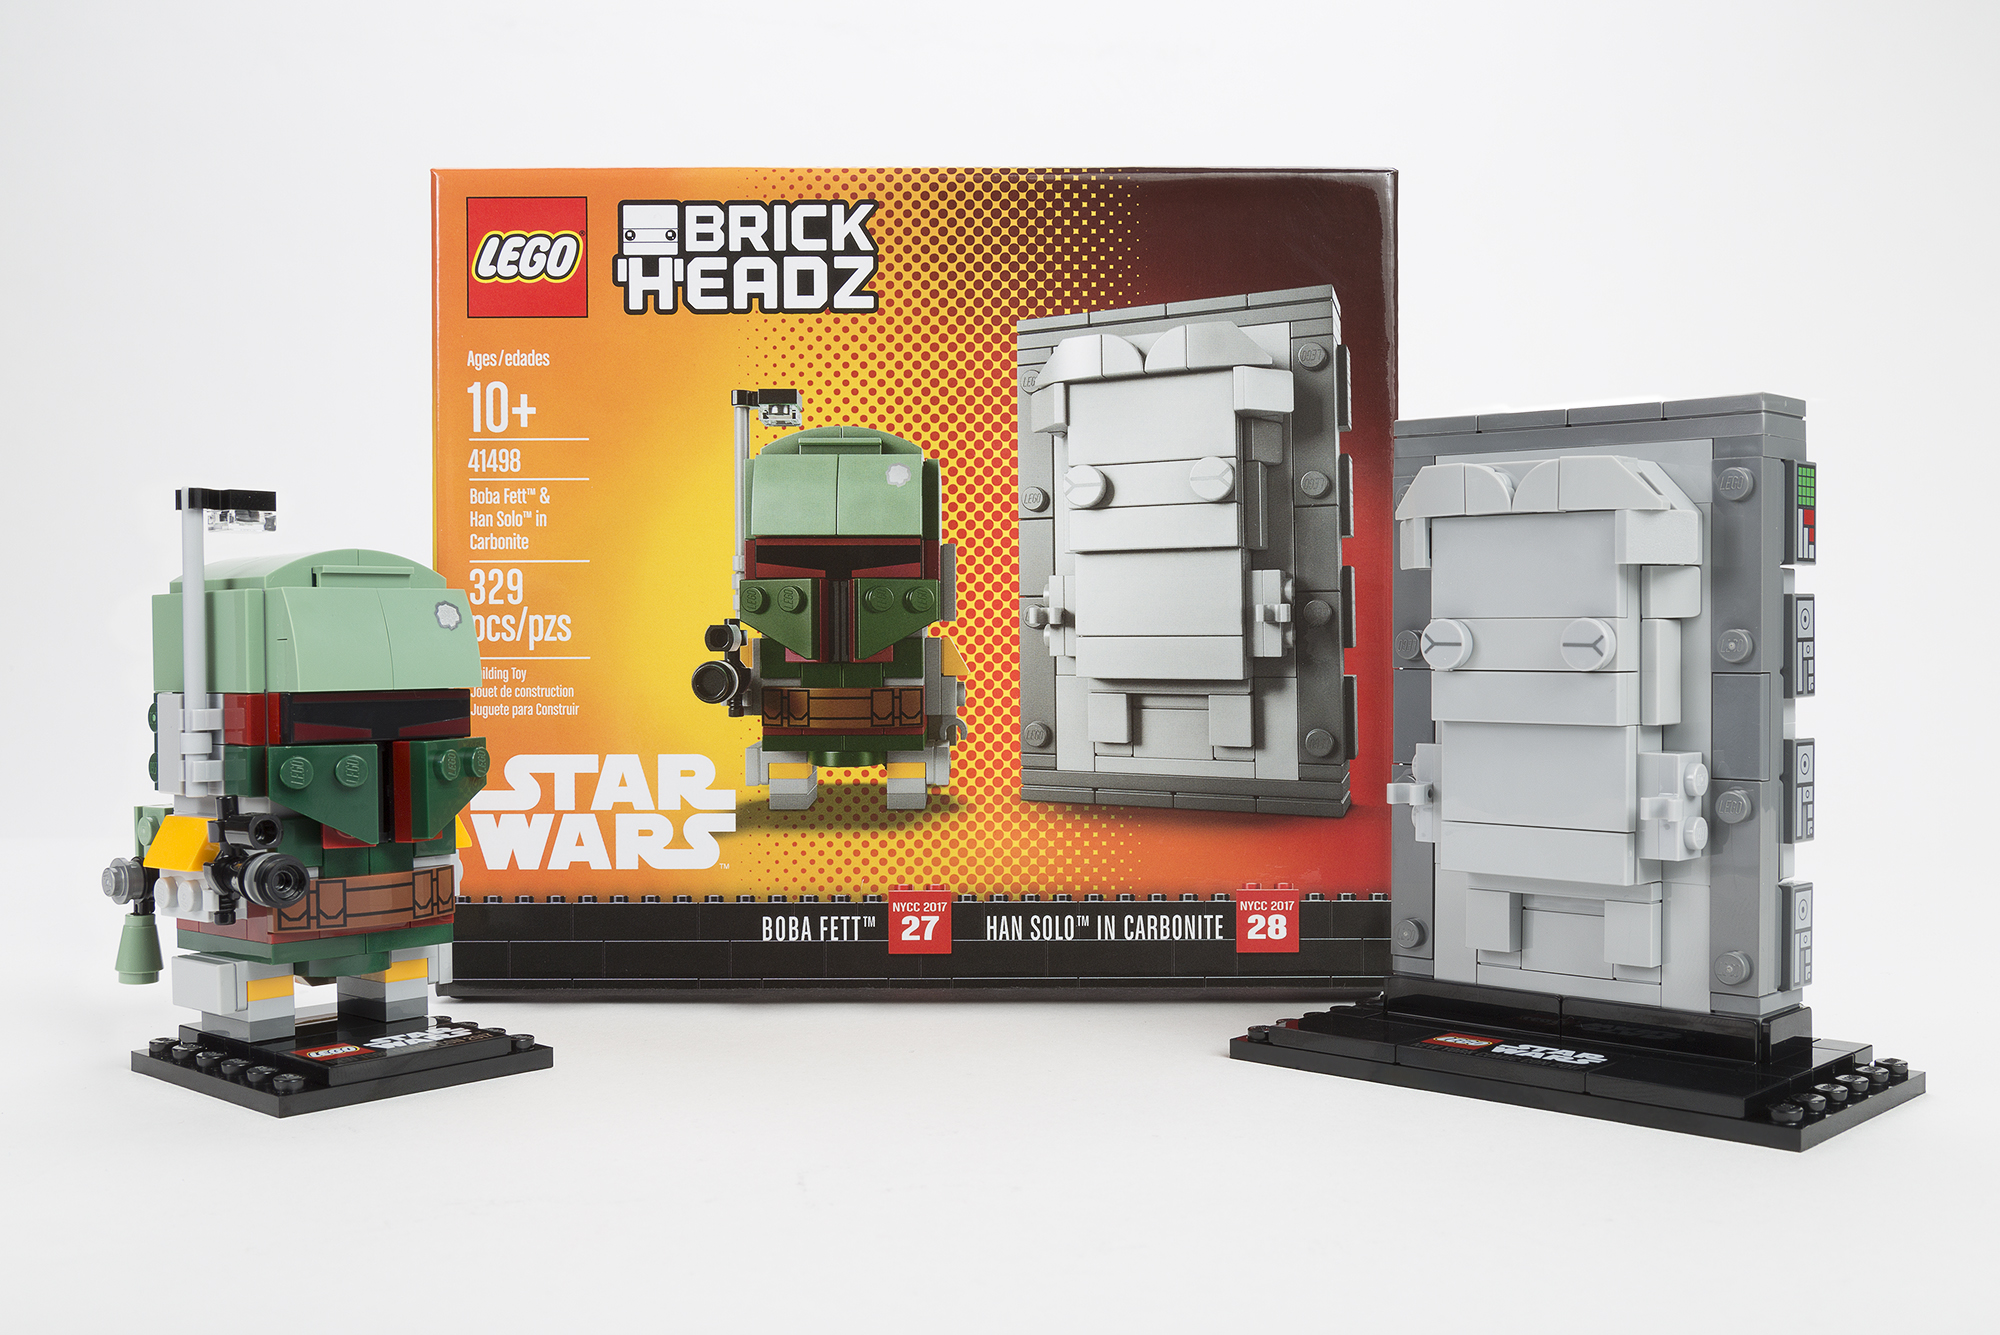 LEGO_NYCC17_Exclusive_Figures_and_Box